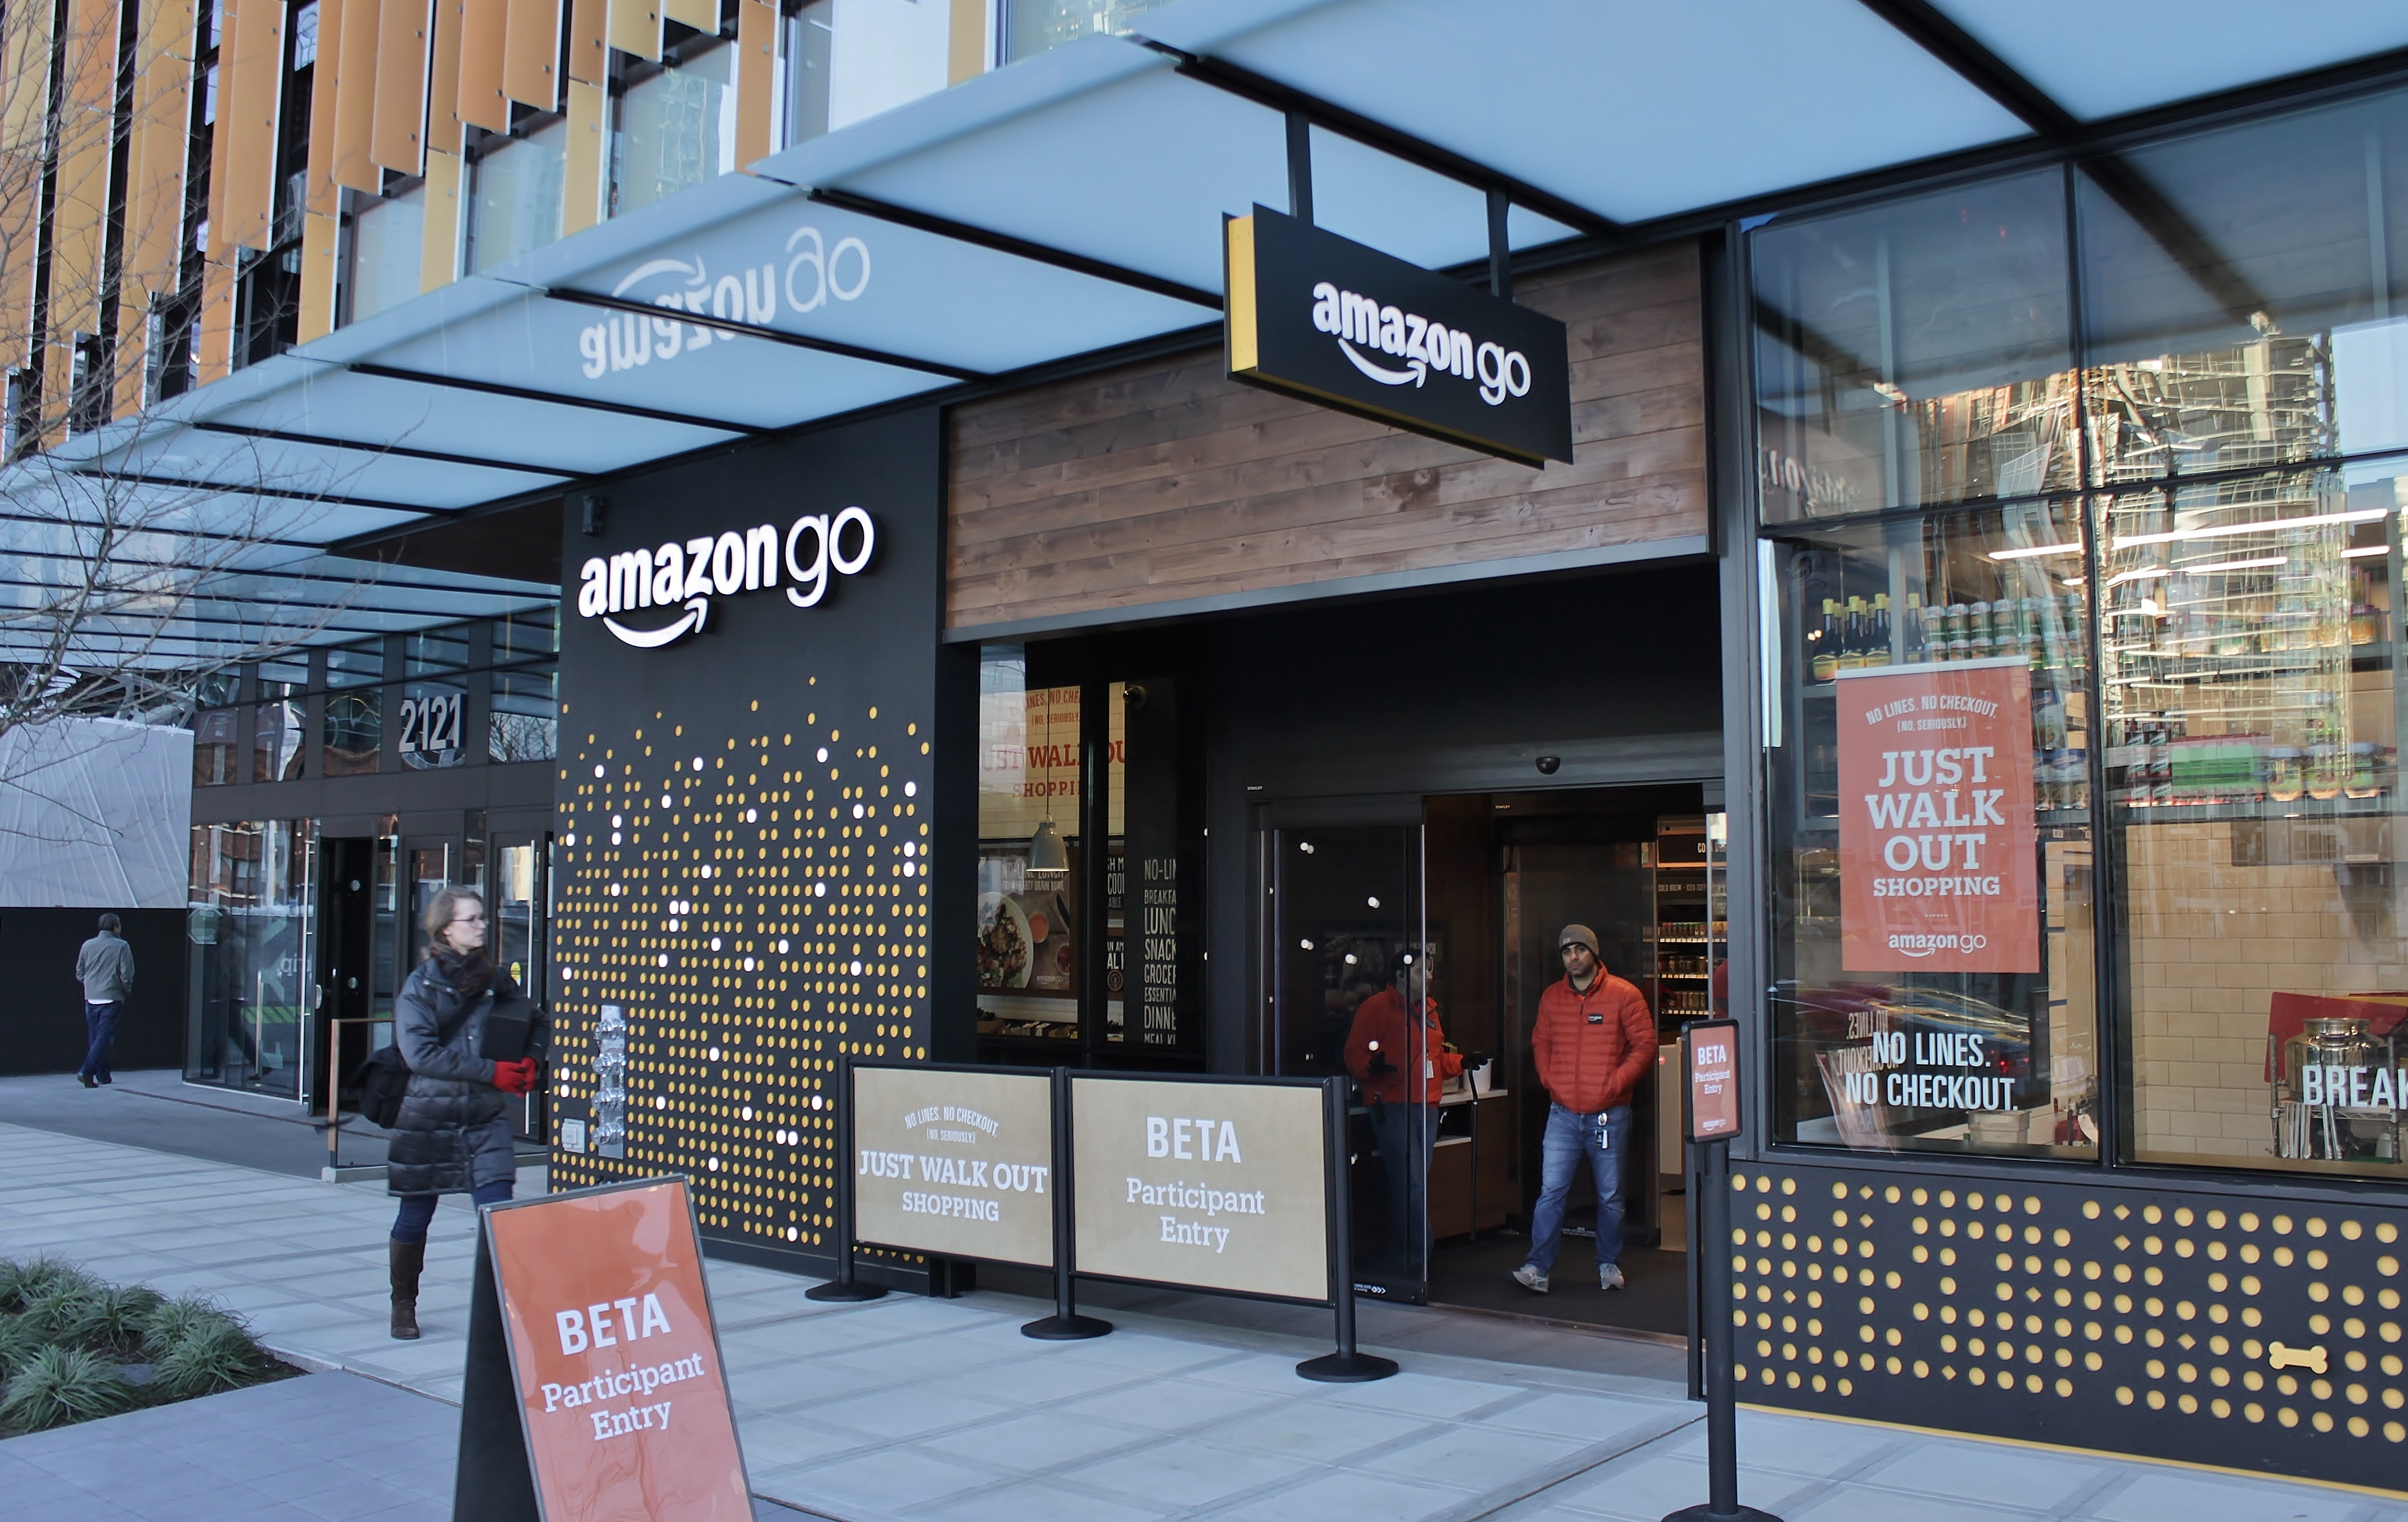 Amazon Go In Seattle December 2016